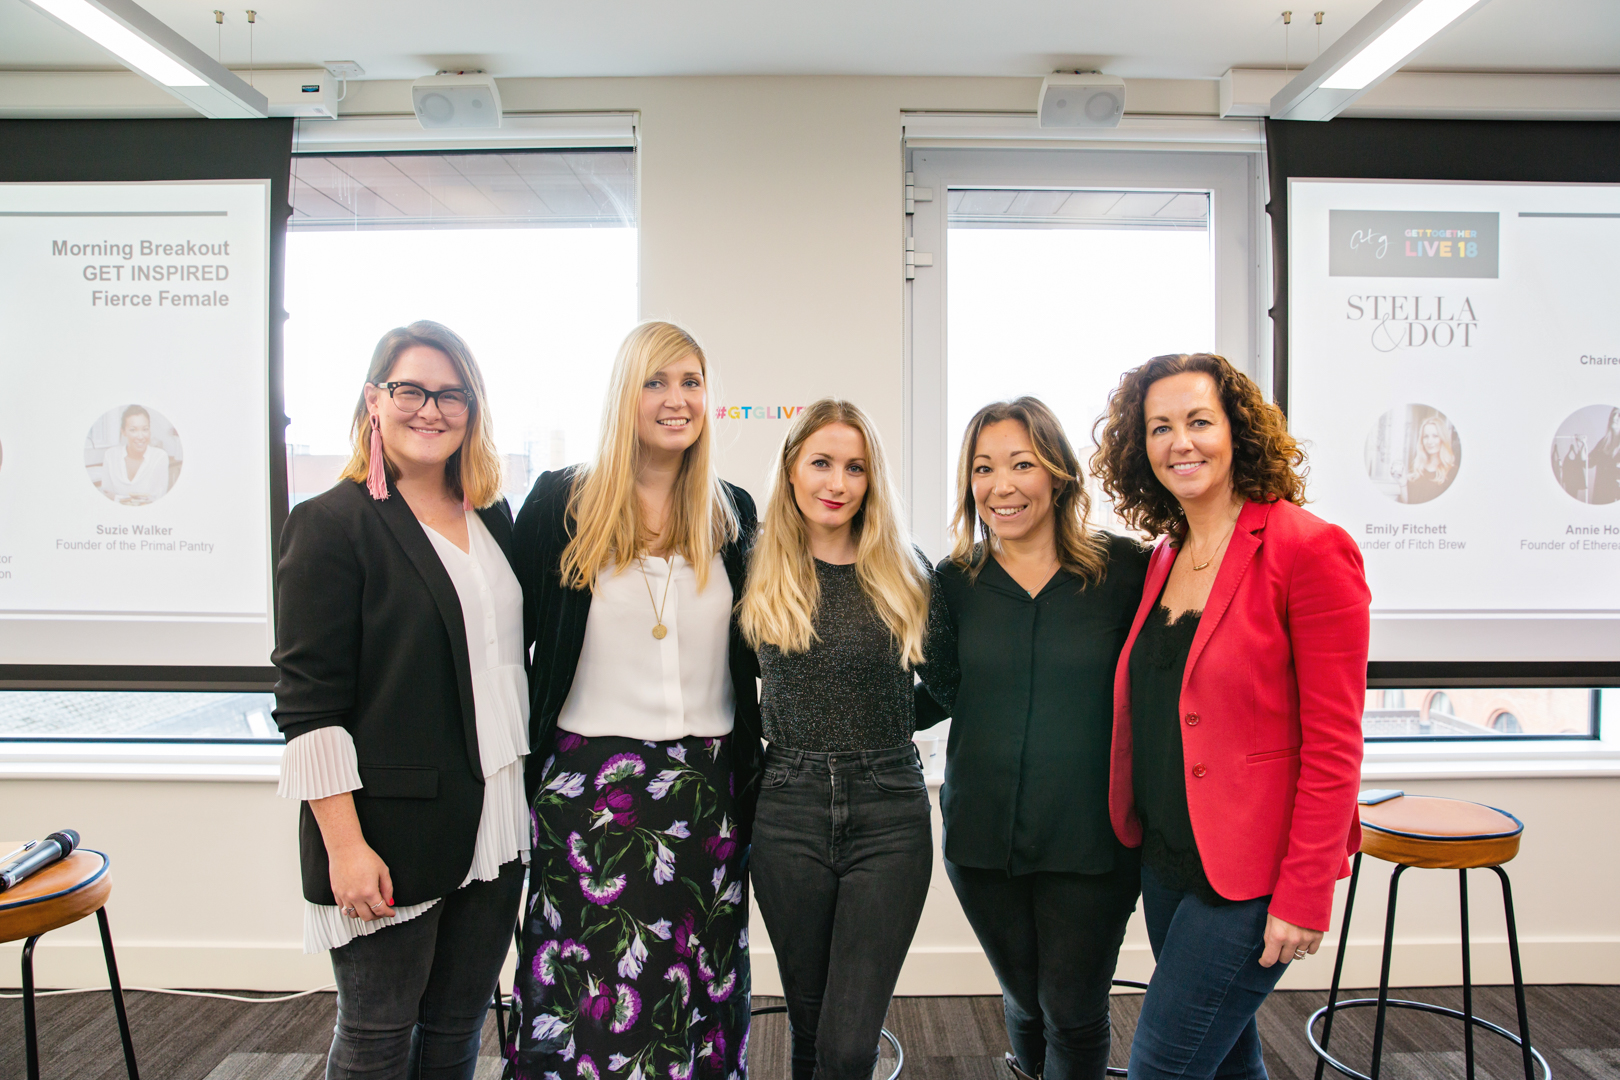 The panel for the 'Fierce Females' talk I hosted - Annie Holt, Emily Fitcham, Suzie Walker and Claire Hurst